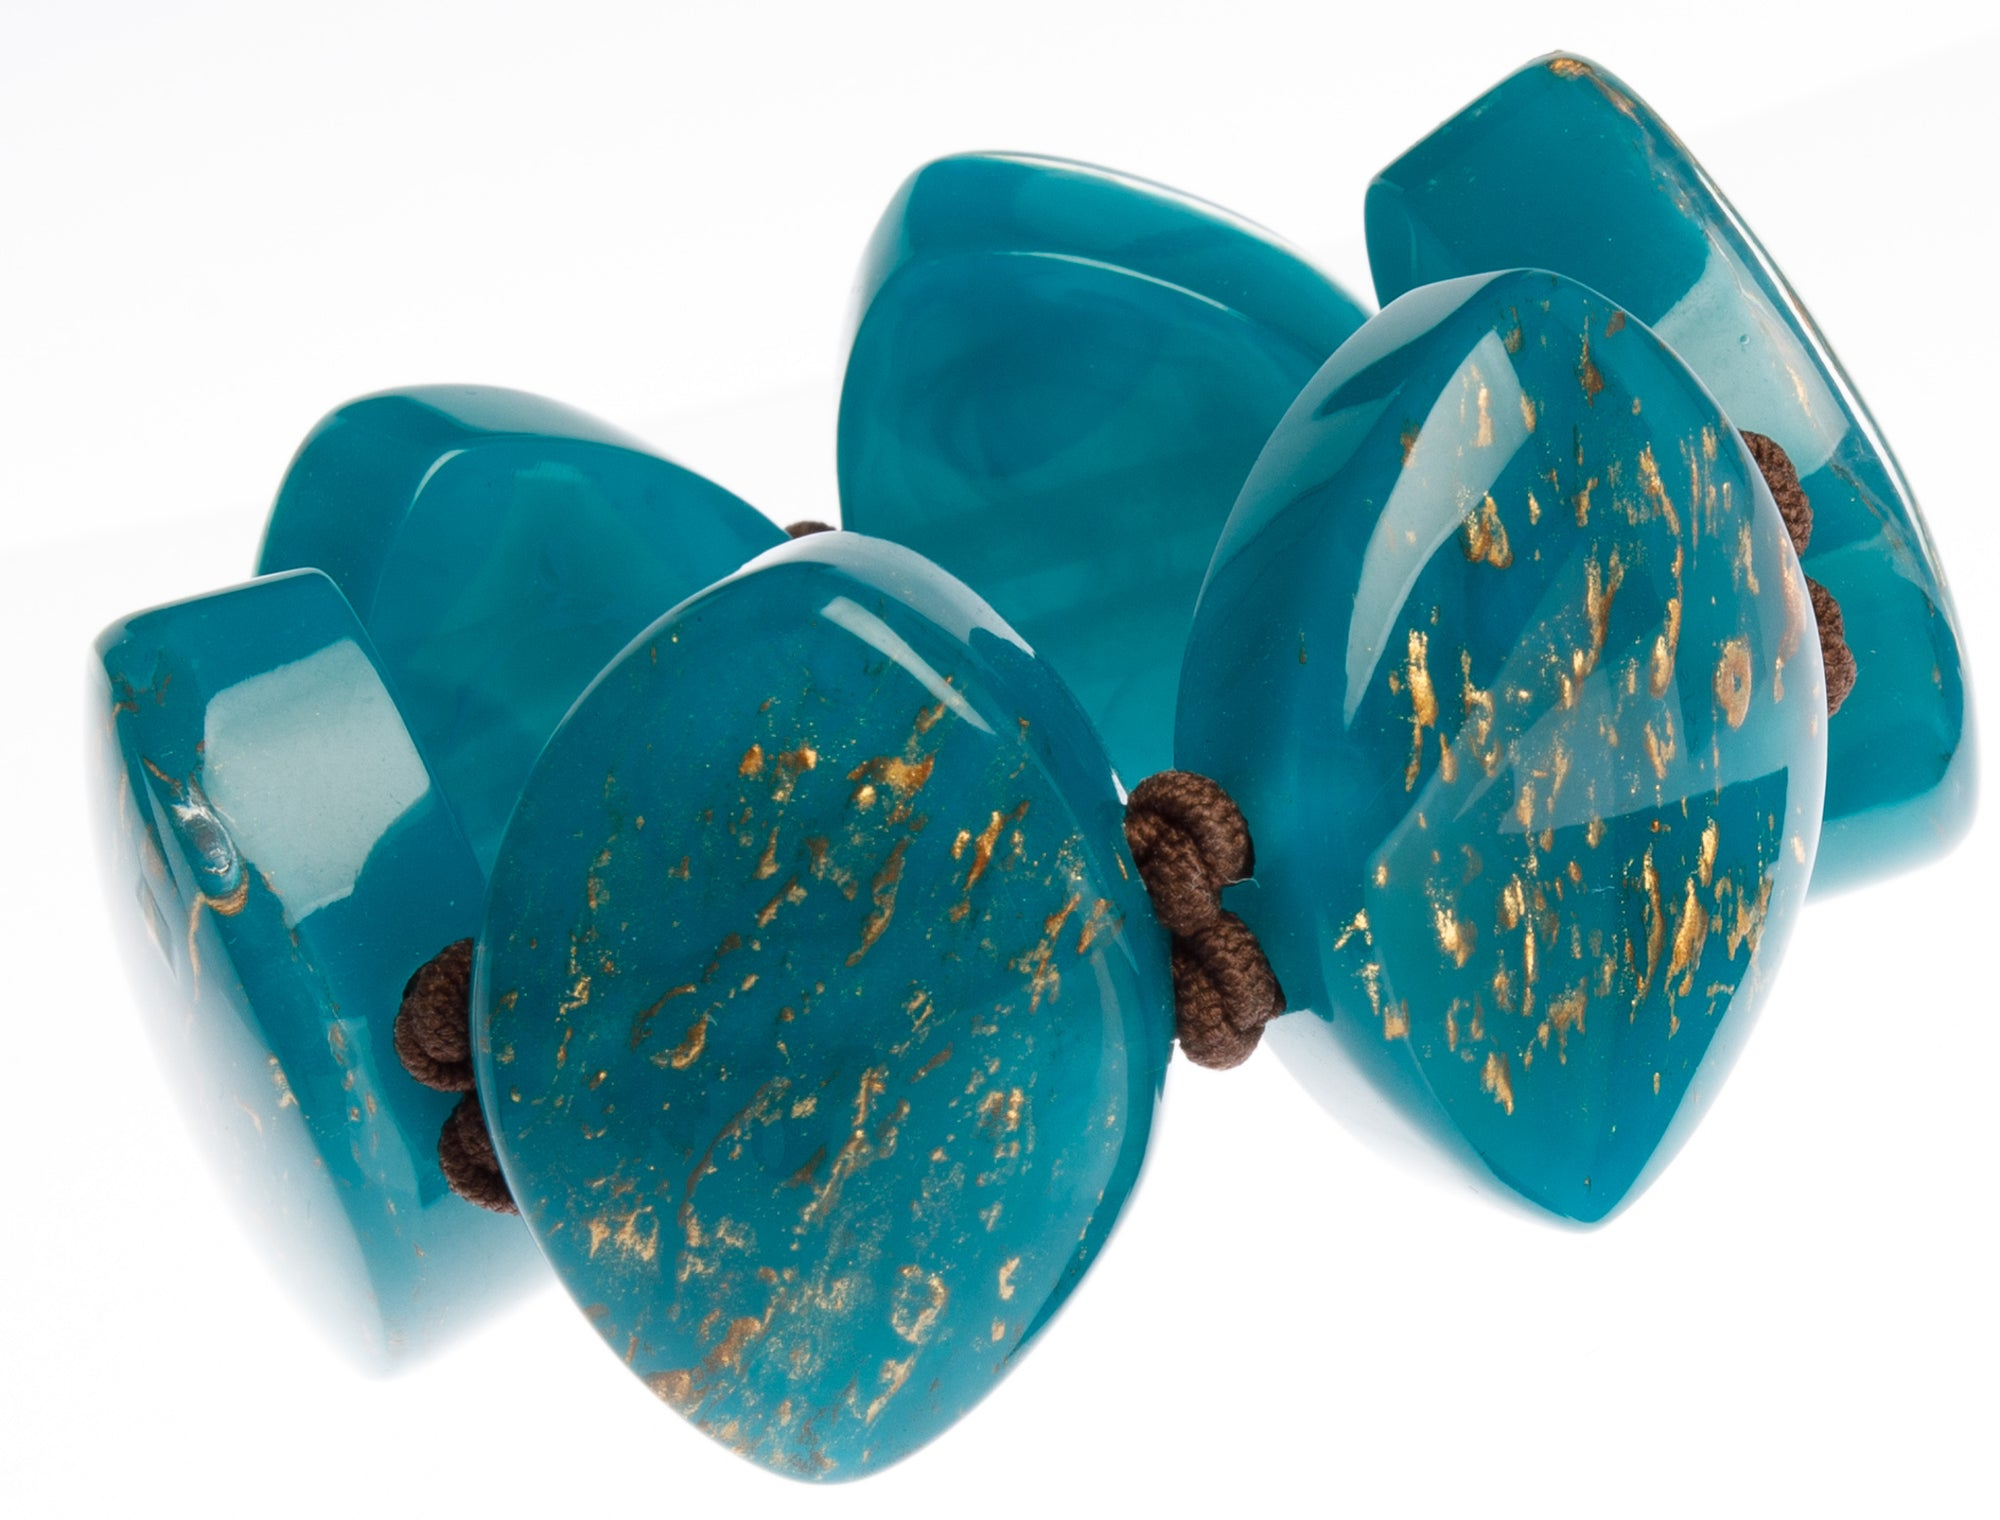 Zsiska Rhea Bracelet - Teal or Green with Gold Leaf Feature